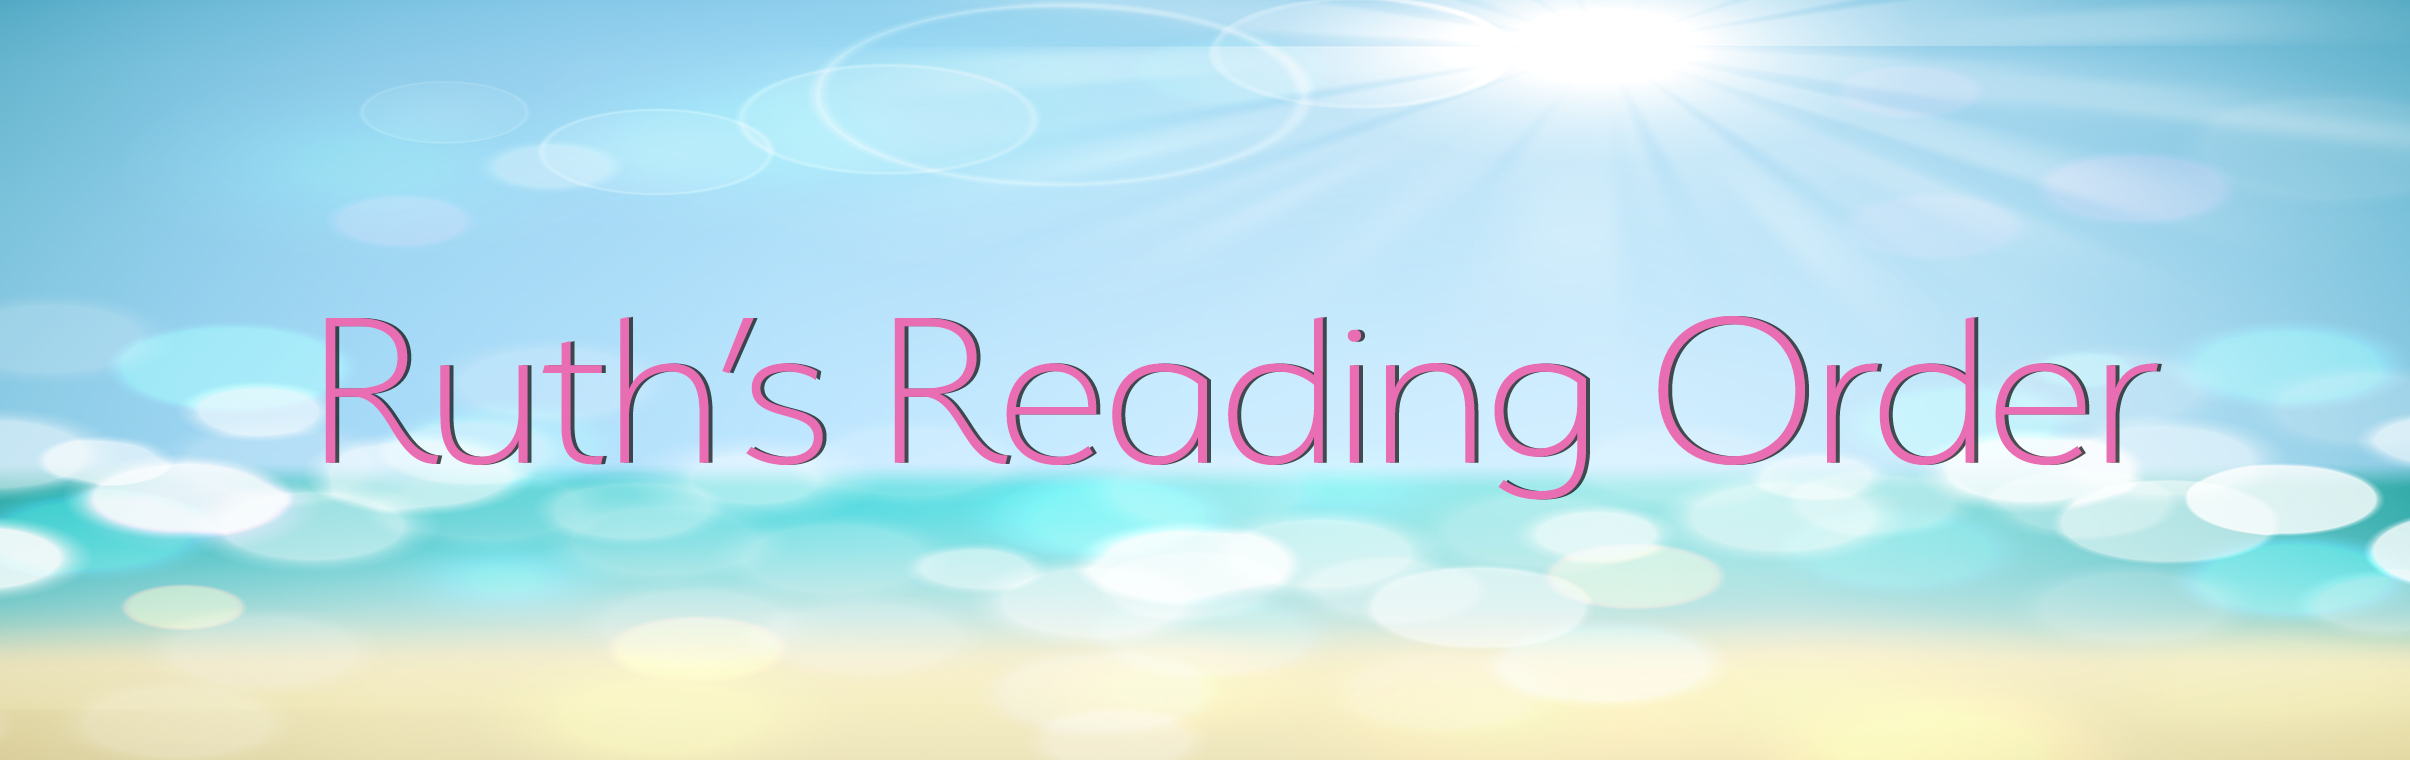 Ruth's reading order - website -.png